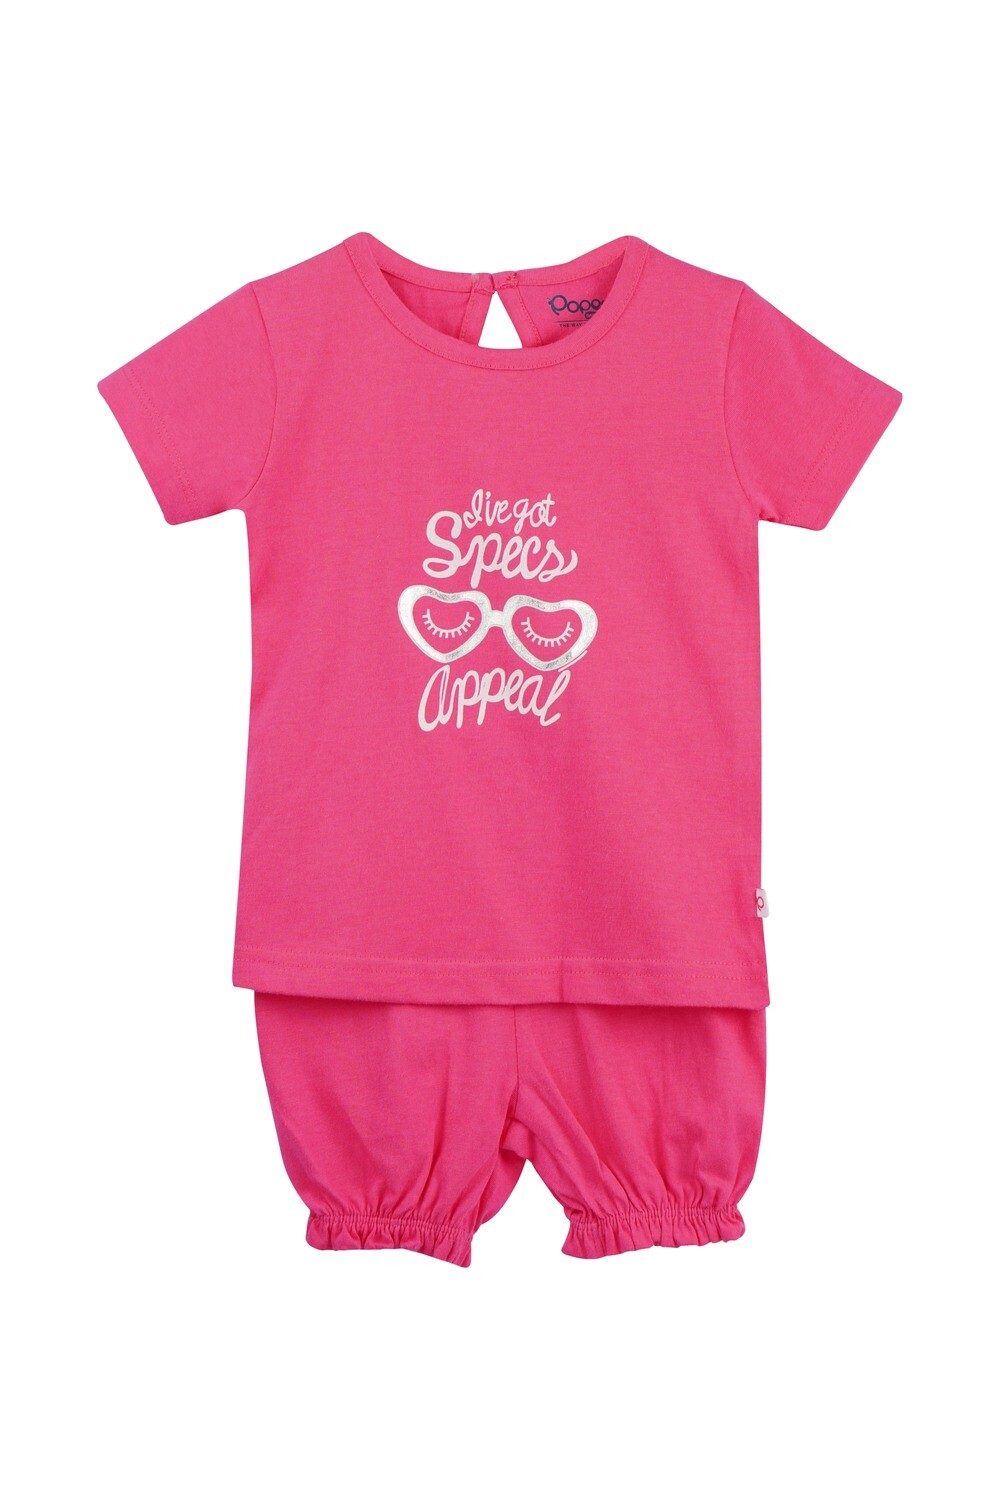 LEVINE Fuchsia Half sleeve Top and Shorts for Baby Girls